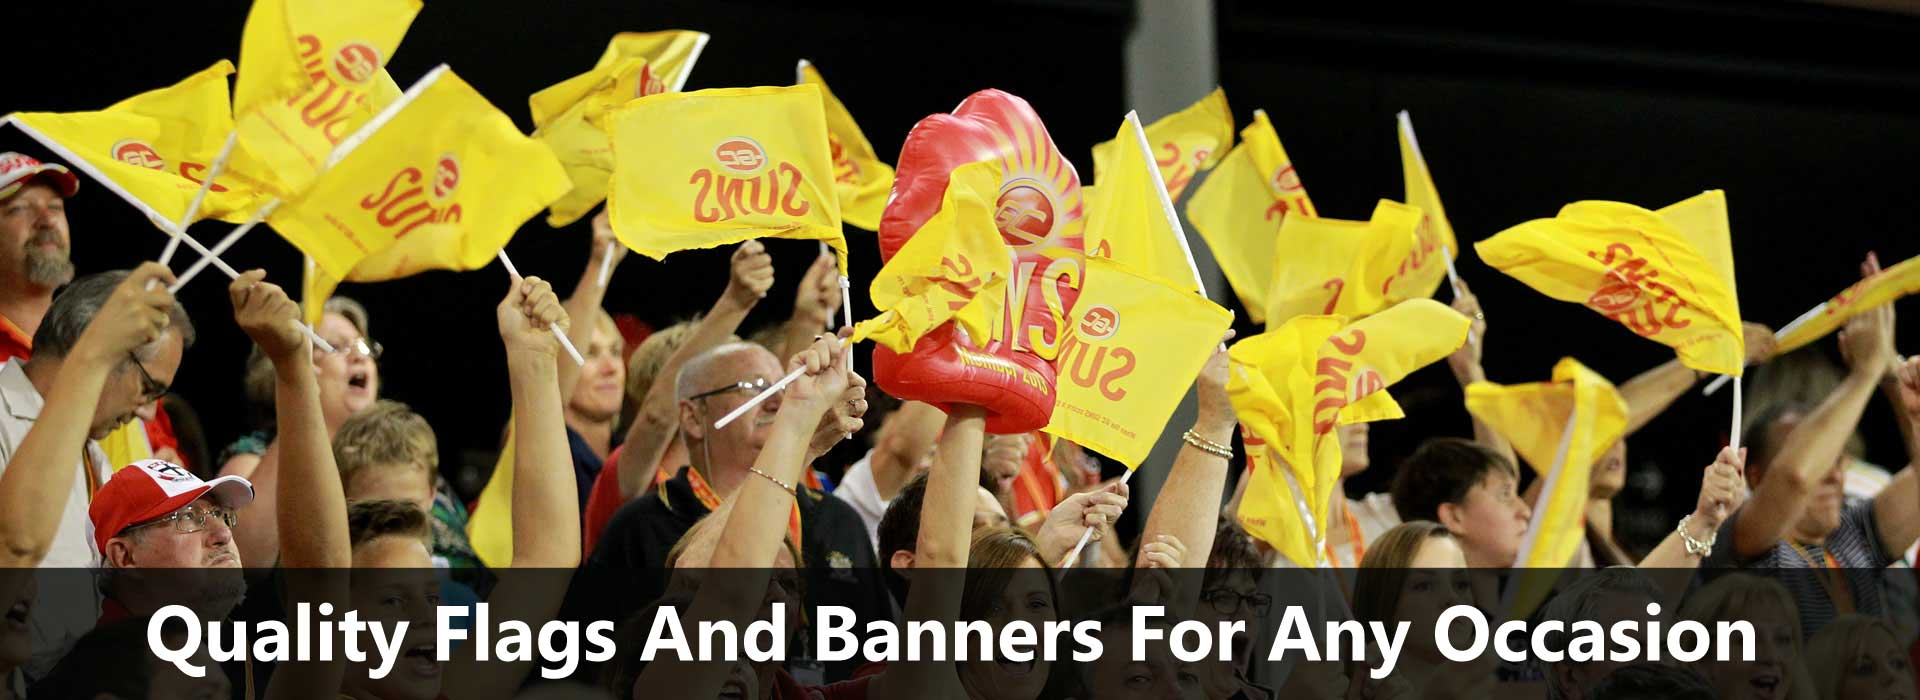 hand flags and banners